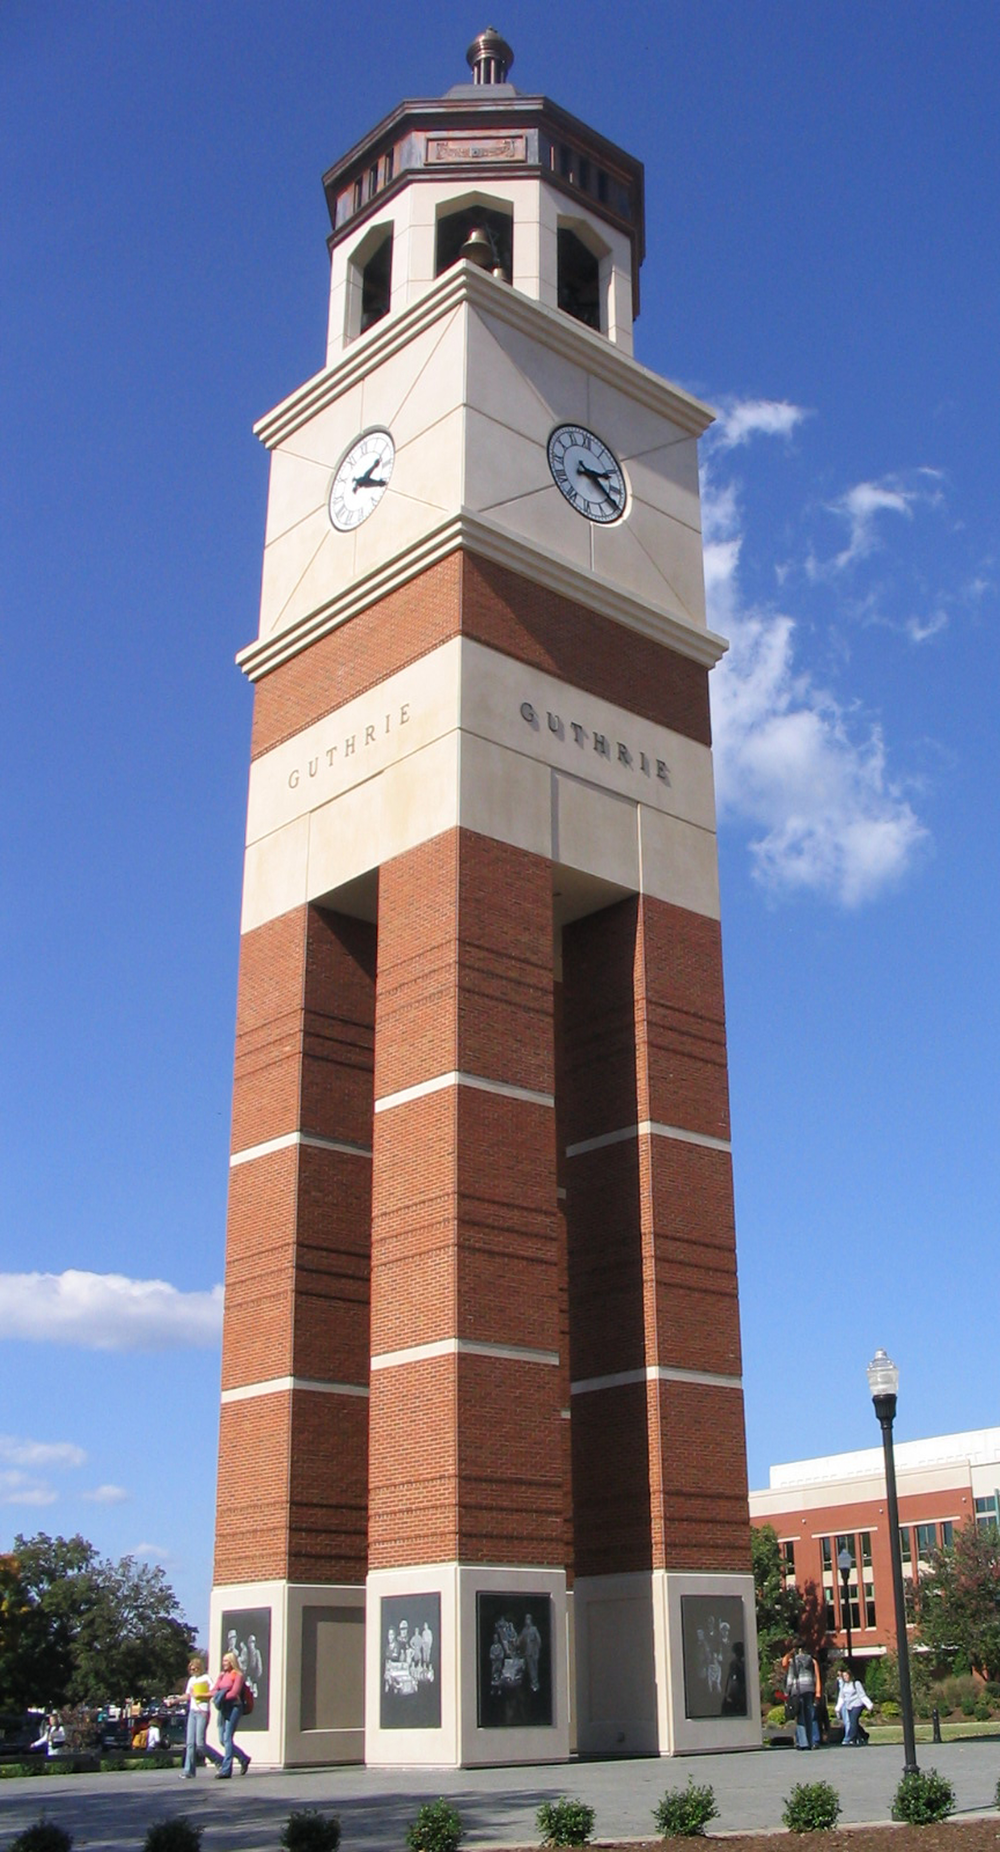 WKU Guthrie Tower and Plaza